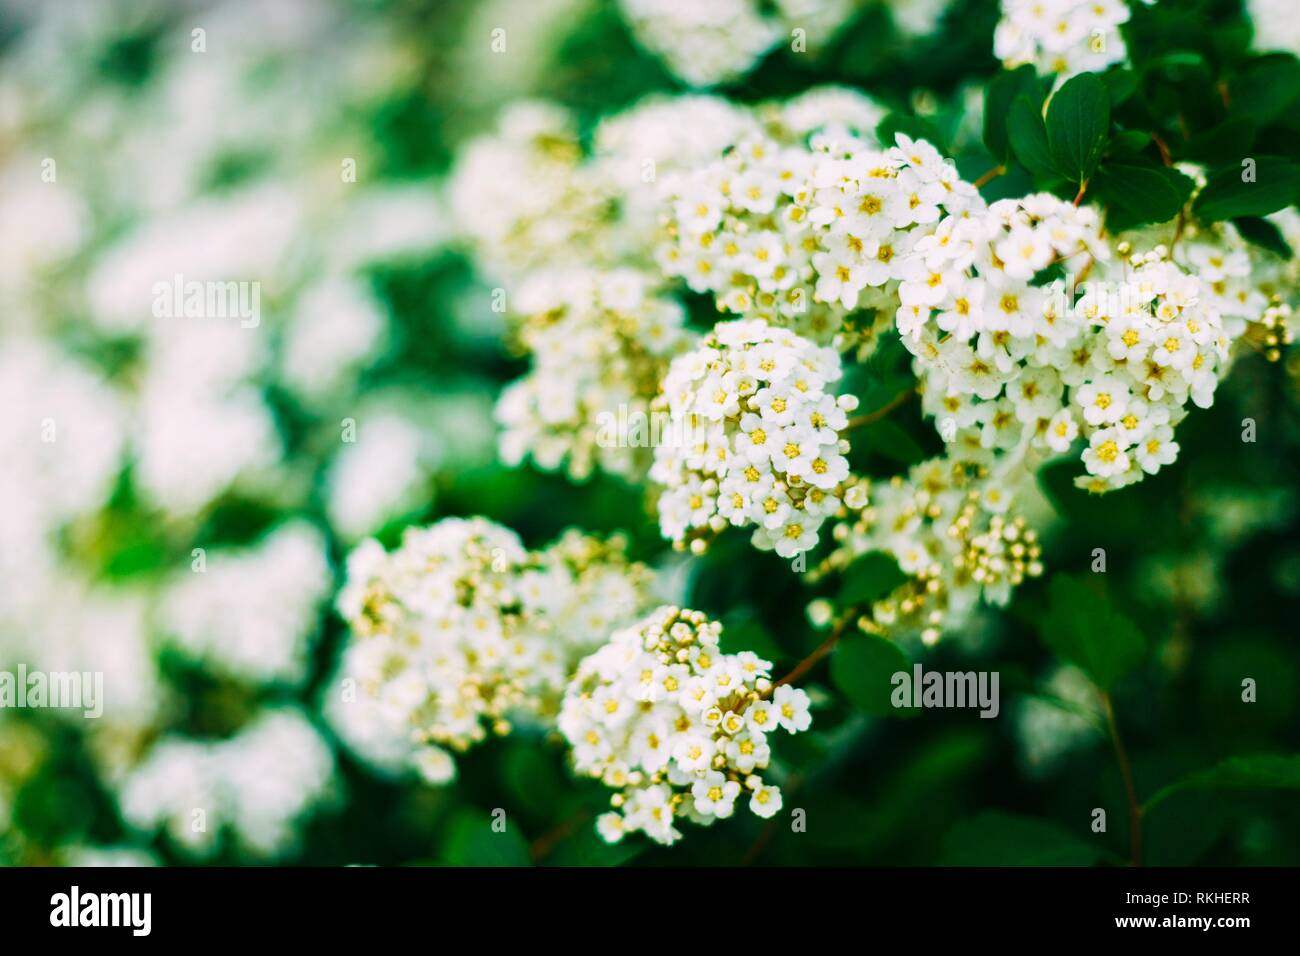 White Spirea Flowers On Bush At Spring. Spiraea flowers are highly valued in decorative gardening and forestry management. The plant is widely used - Stock Image